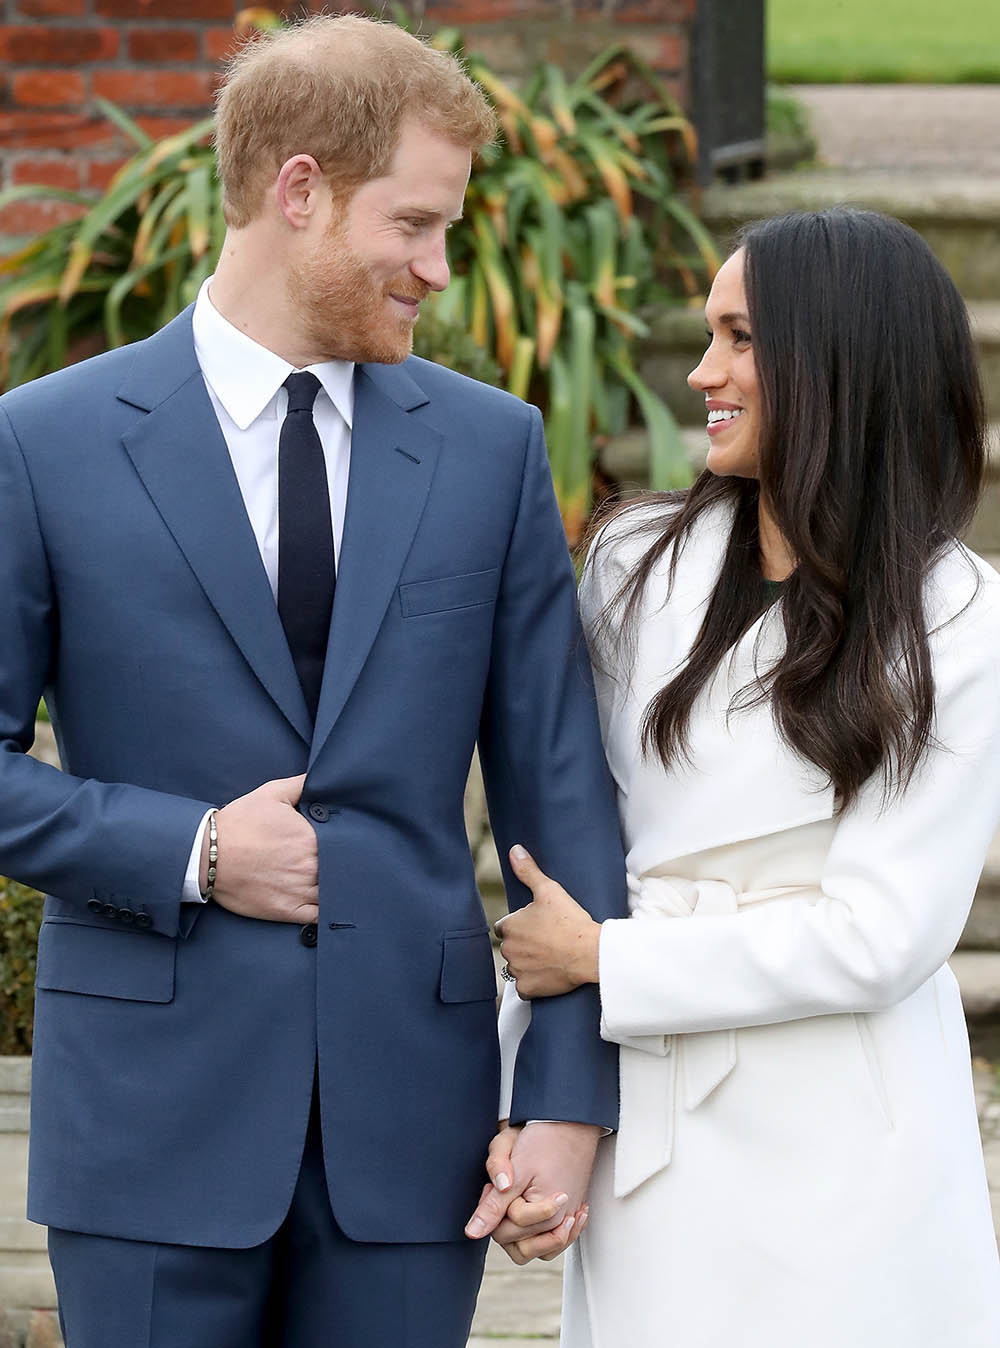 Prince Harry & Ms Meghan Markle